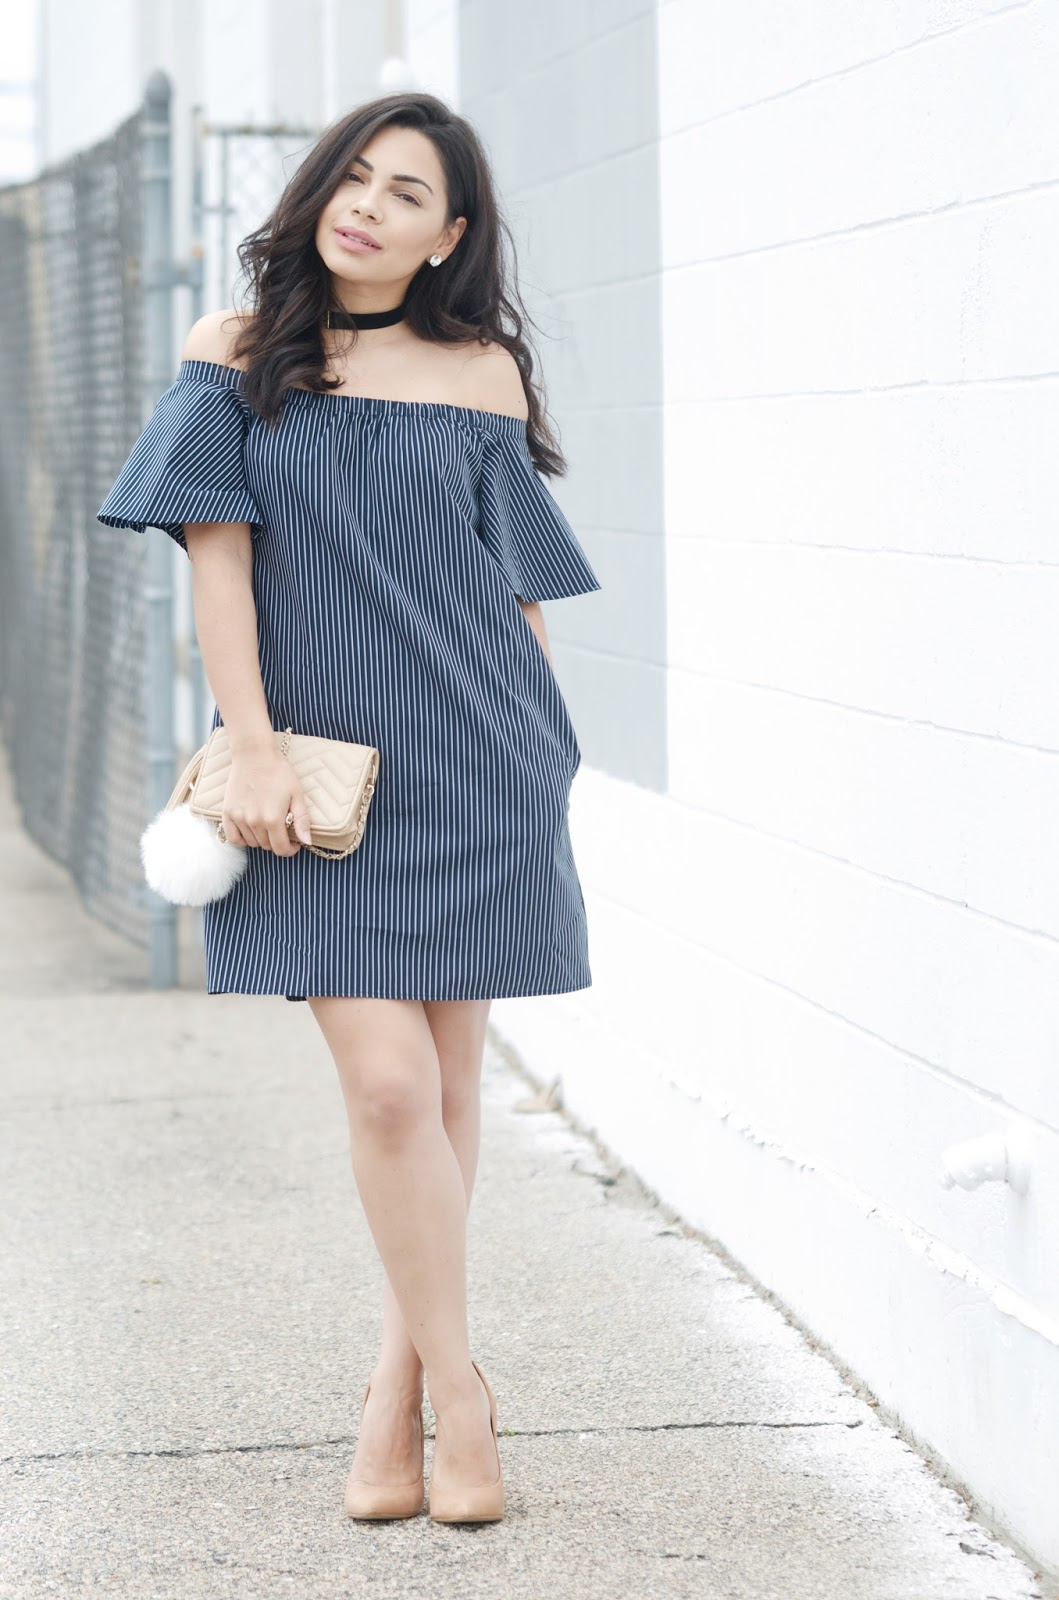 wardrobe staple: off the shoulder dress | the style brunch